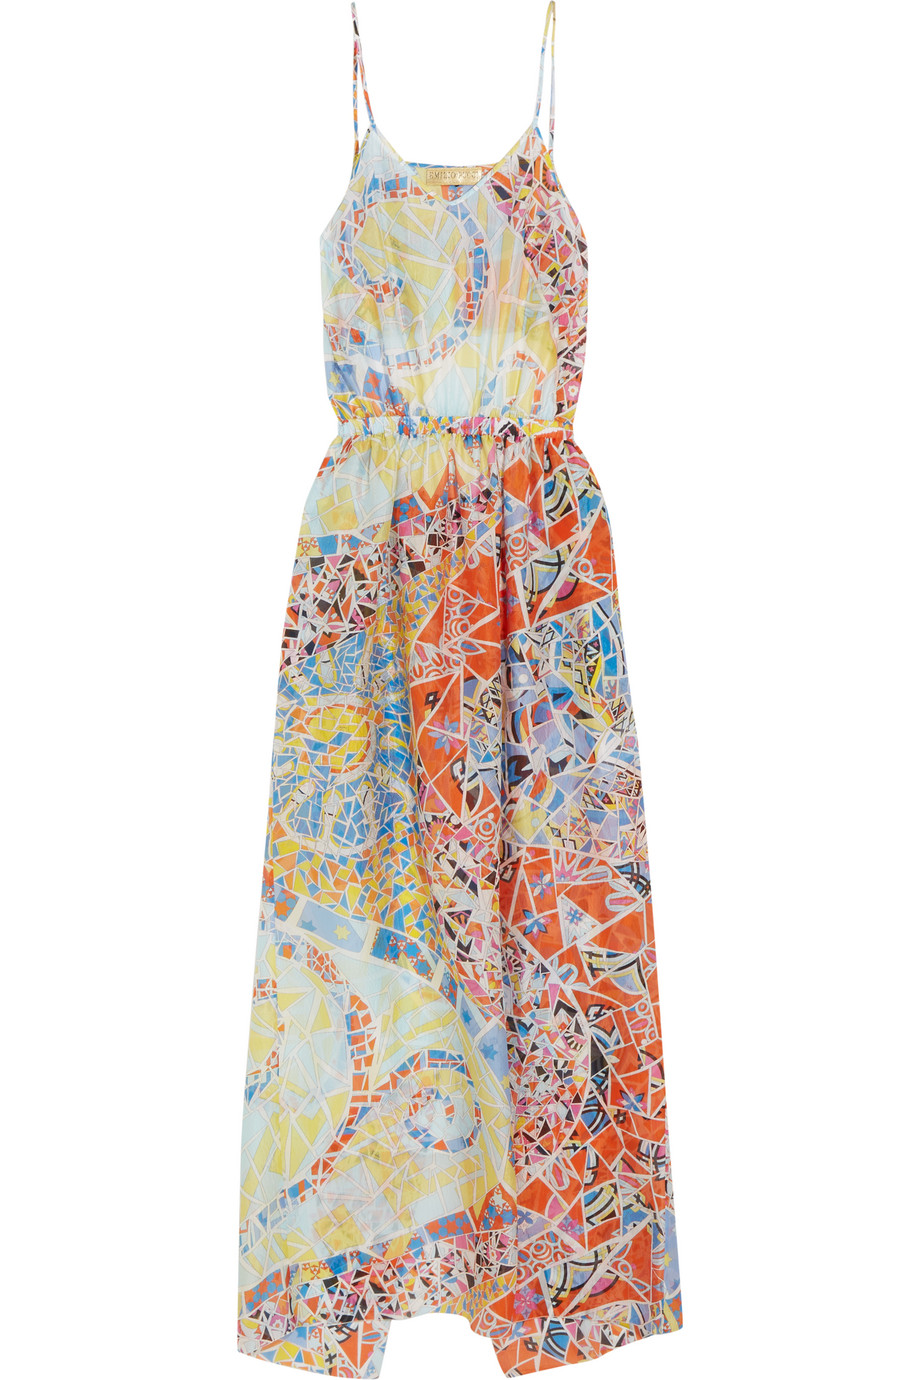 Emilio Pucci Printed Hammered-Silk Dress, Sky Blue, Women's - Printed, Size: 44